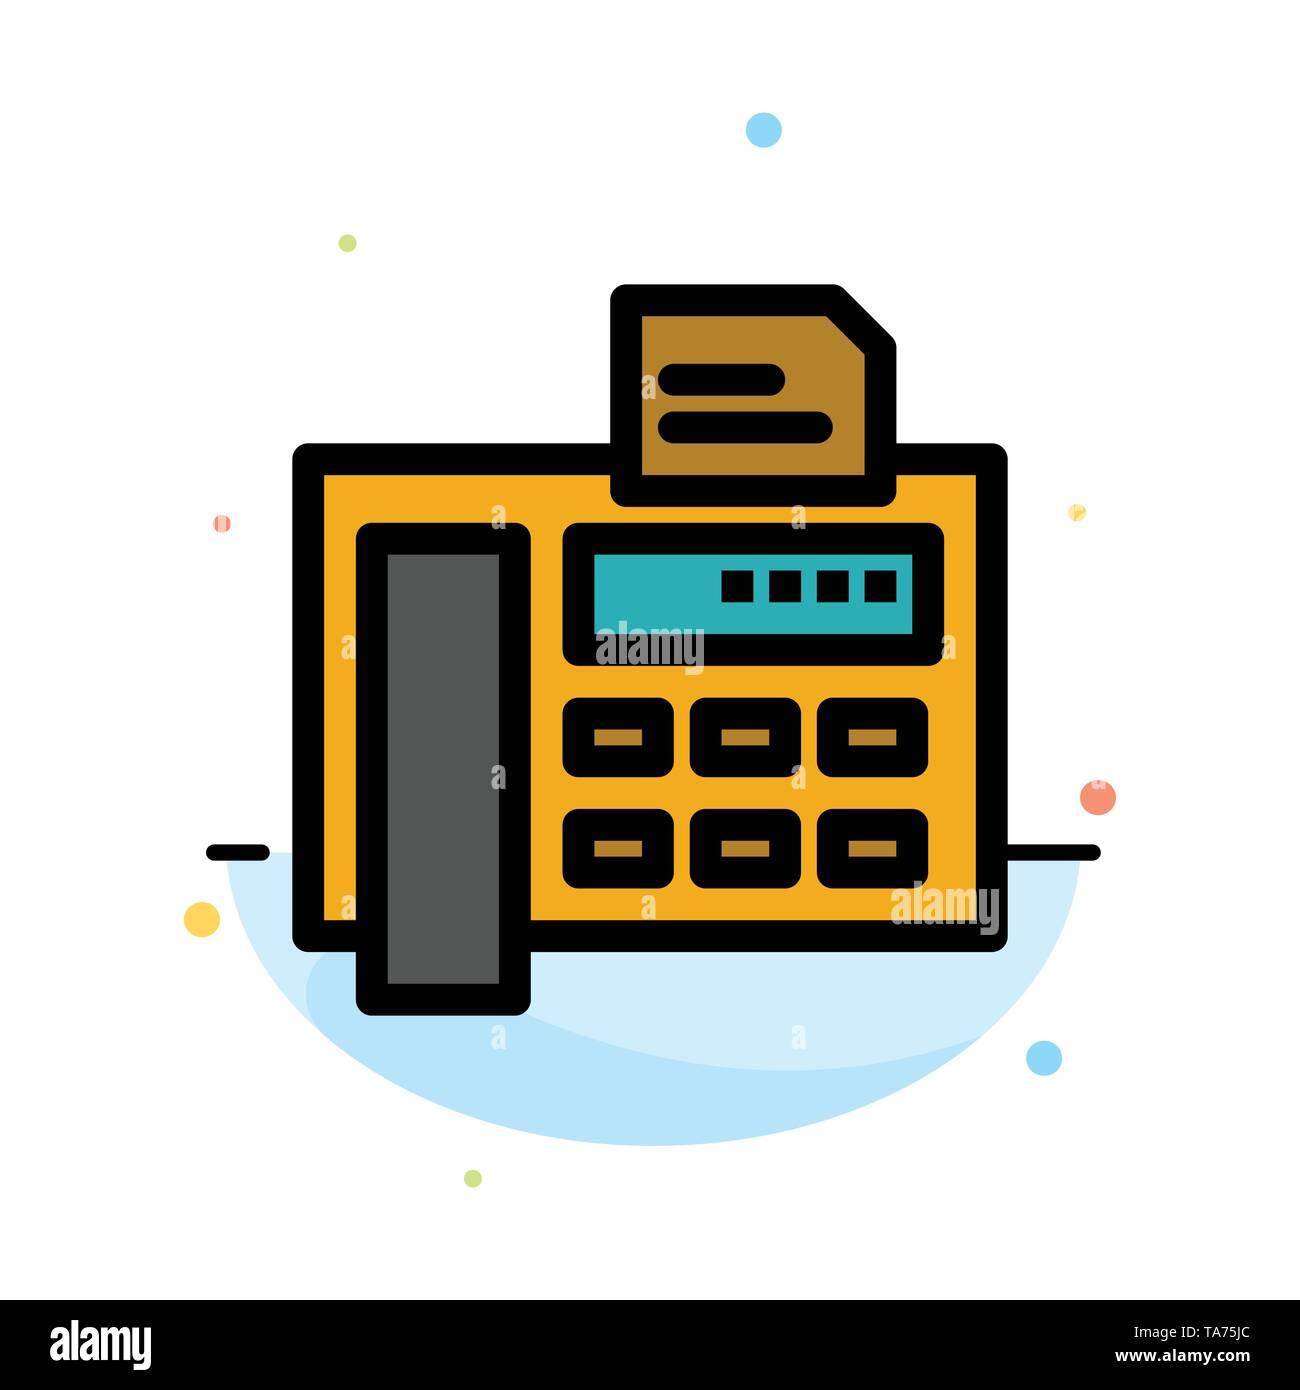 Fax, Phone, Typewriter, Fax Machine Abstract Flat Color Icon Template - Stock Image